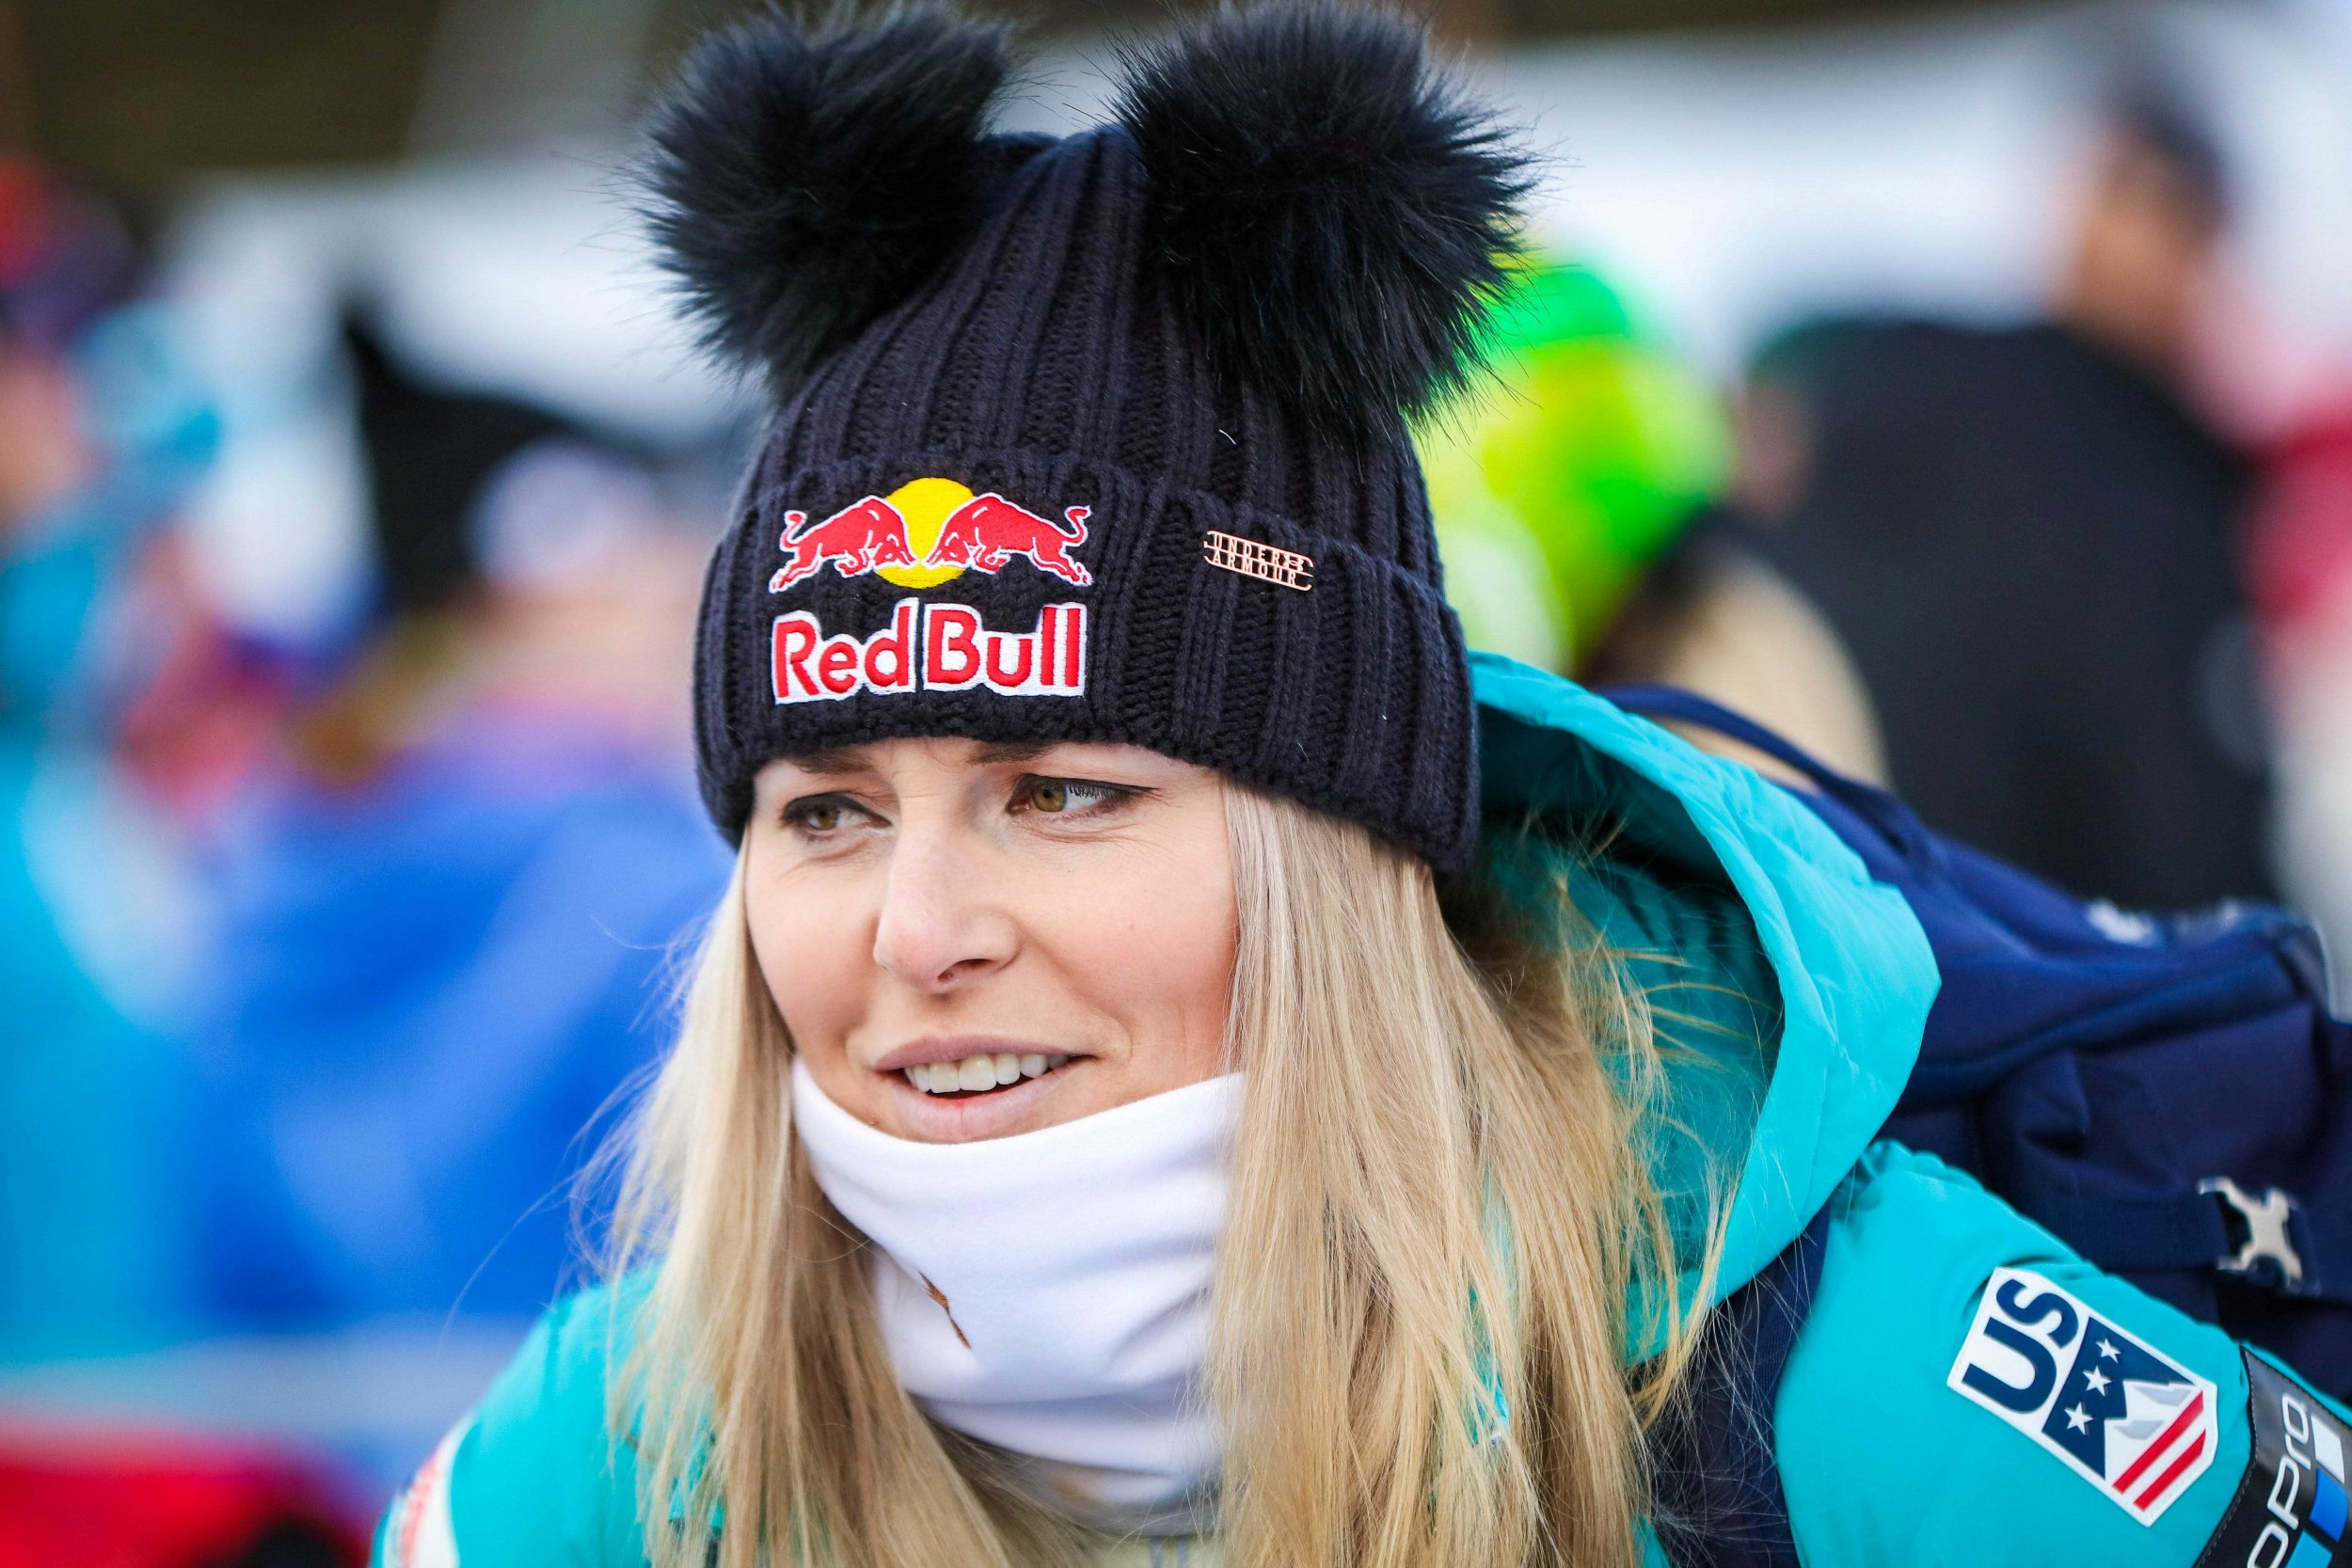 Lindsey Vonn: The Trump Curse? Fox News Connects Lindsey Vonn's Insults